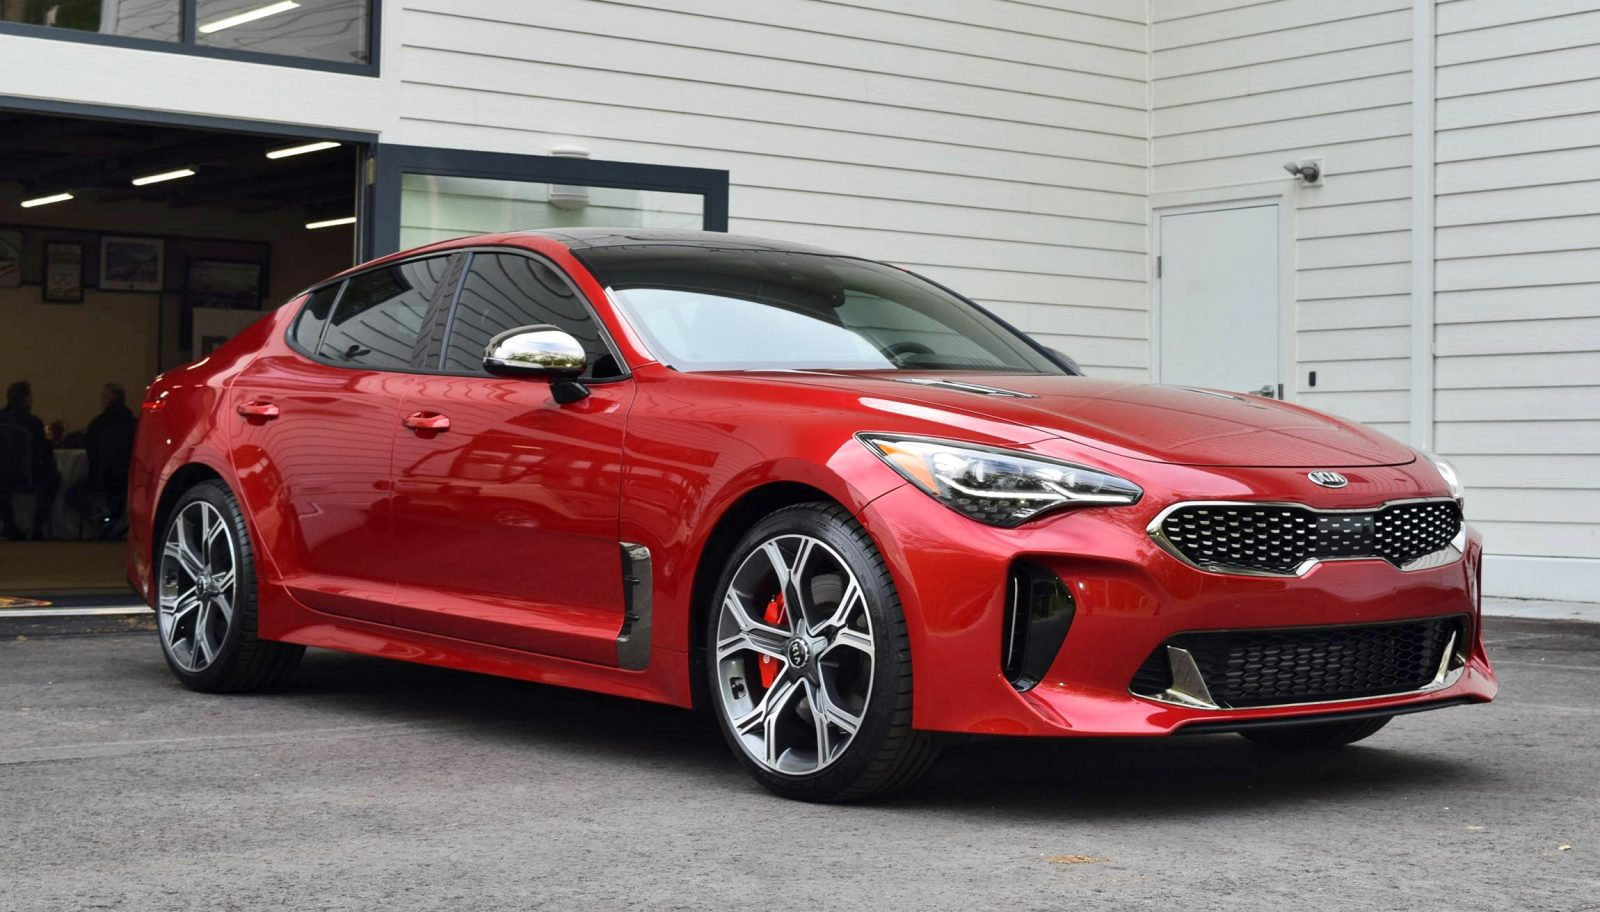 2018 Kia Stinger Gt Awd  48s, 167mph Stats Confirmed